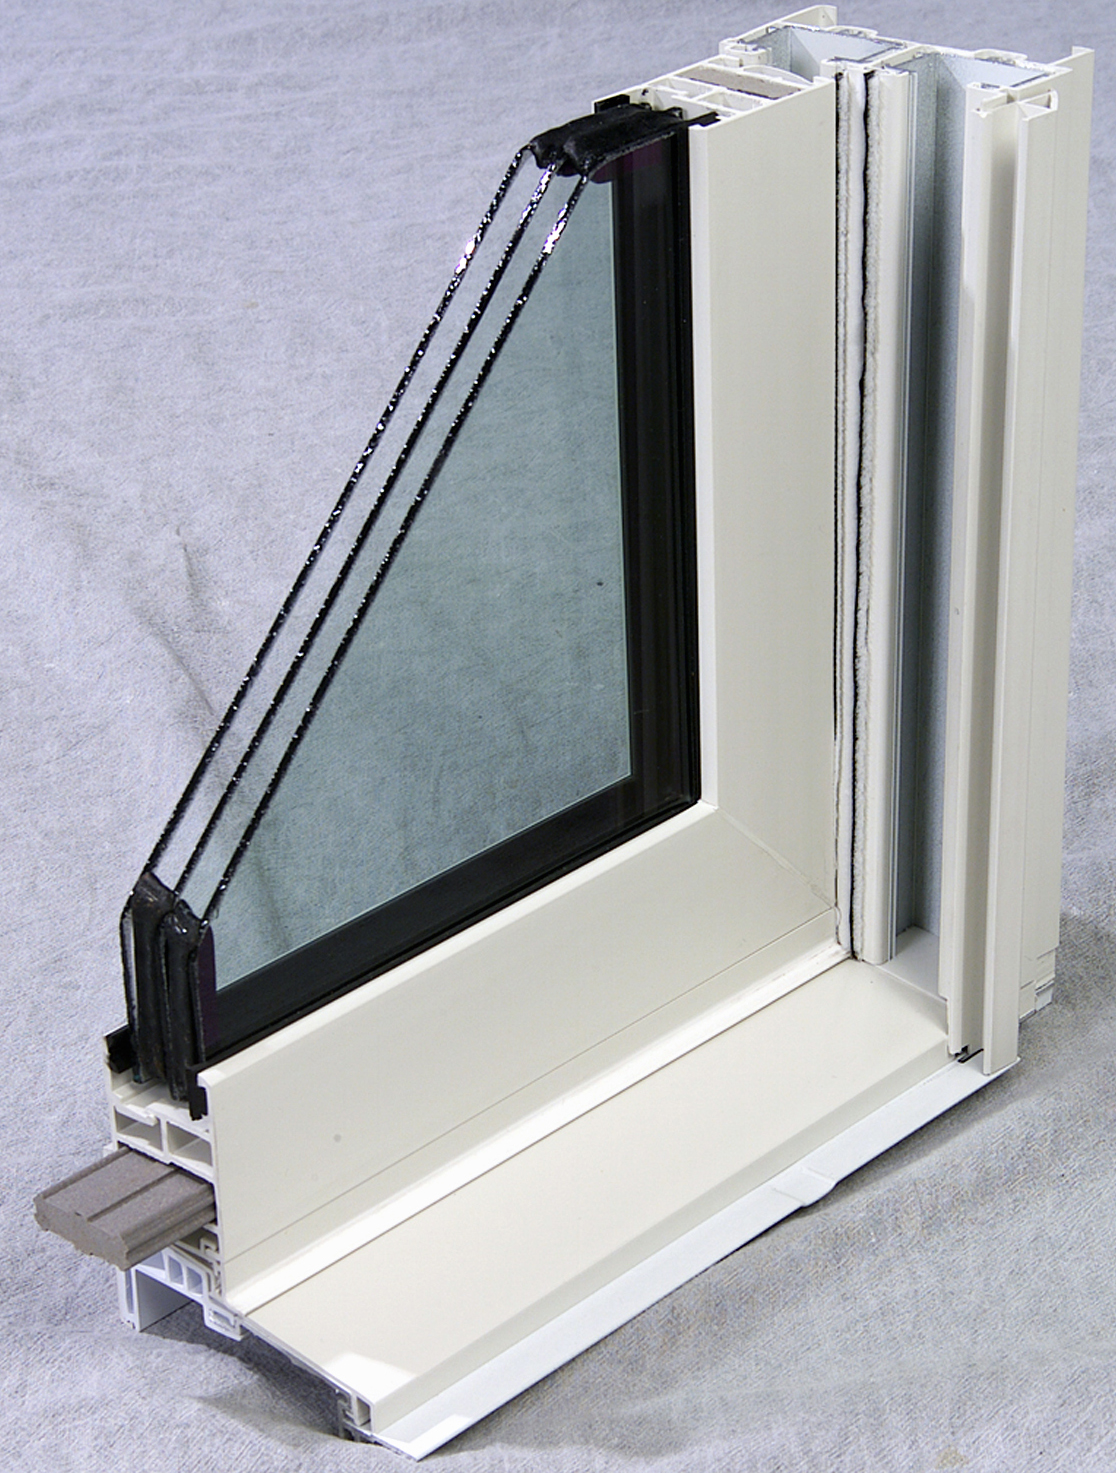 Window panes thermal pane window for Thermal windows